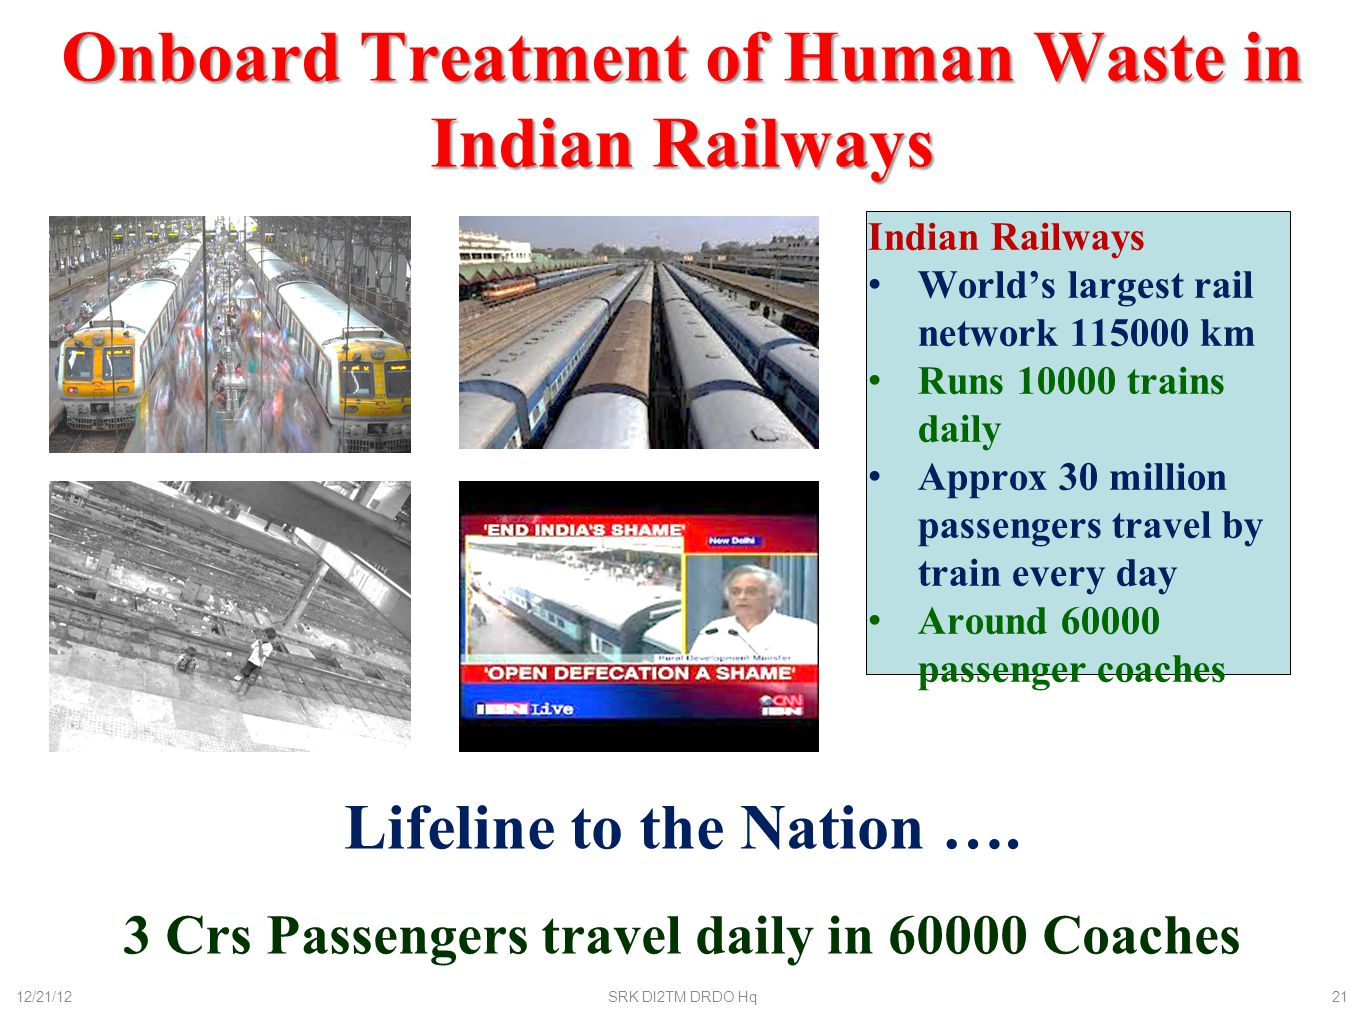 Onboard Treatment of Human Waste in Indian Railways